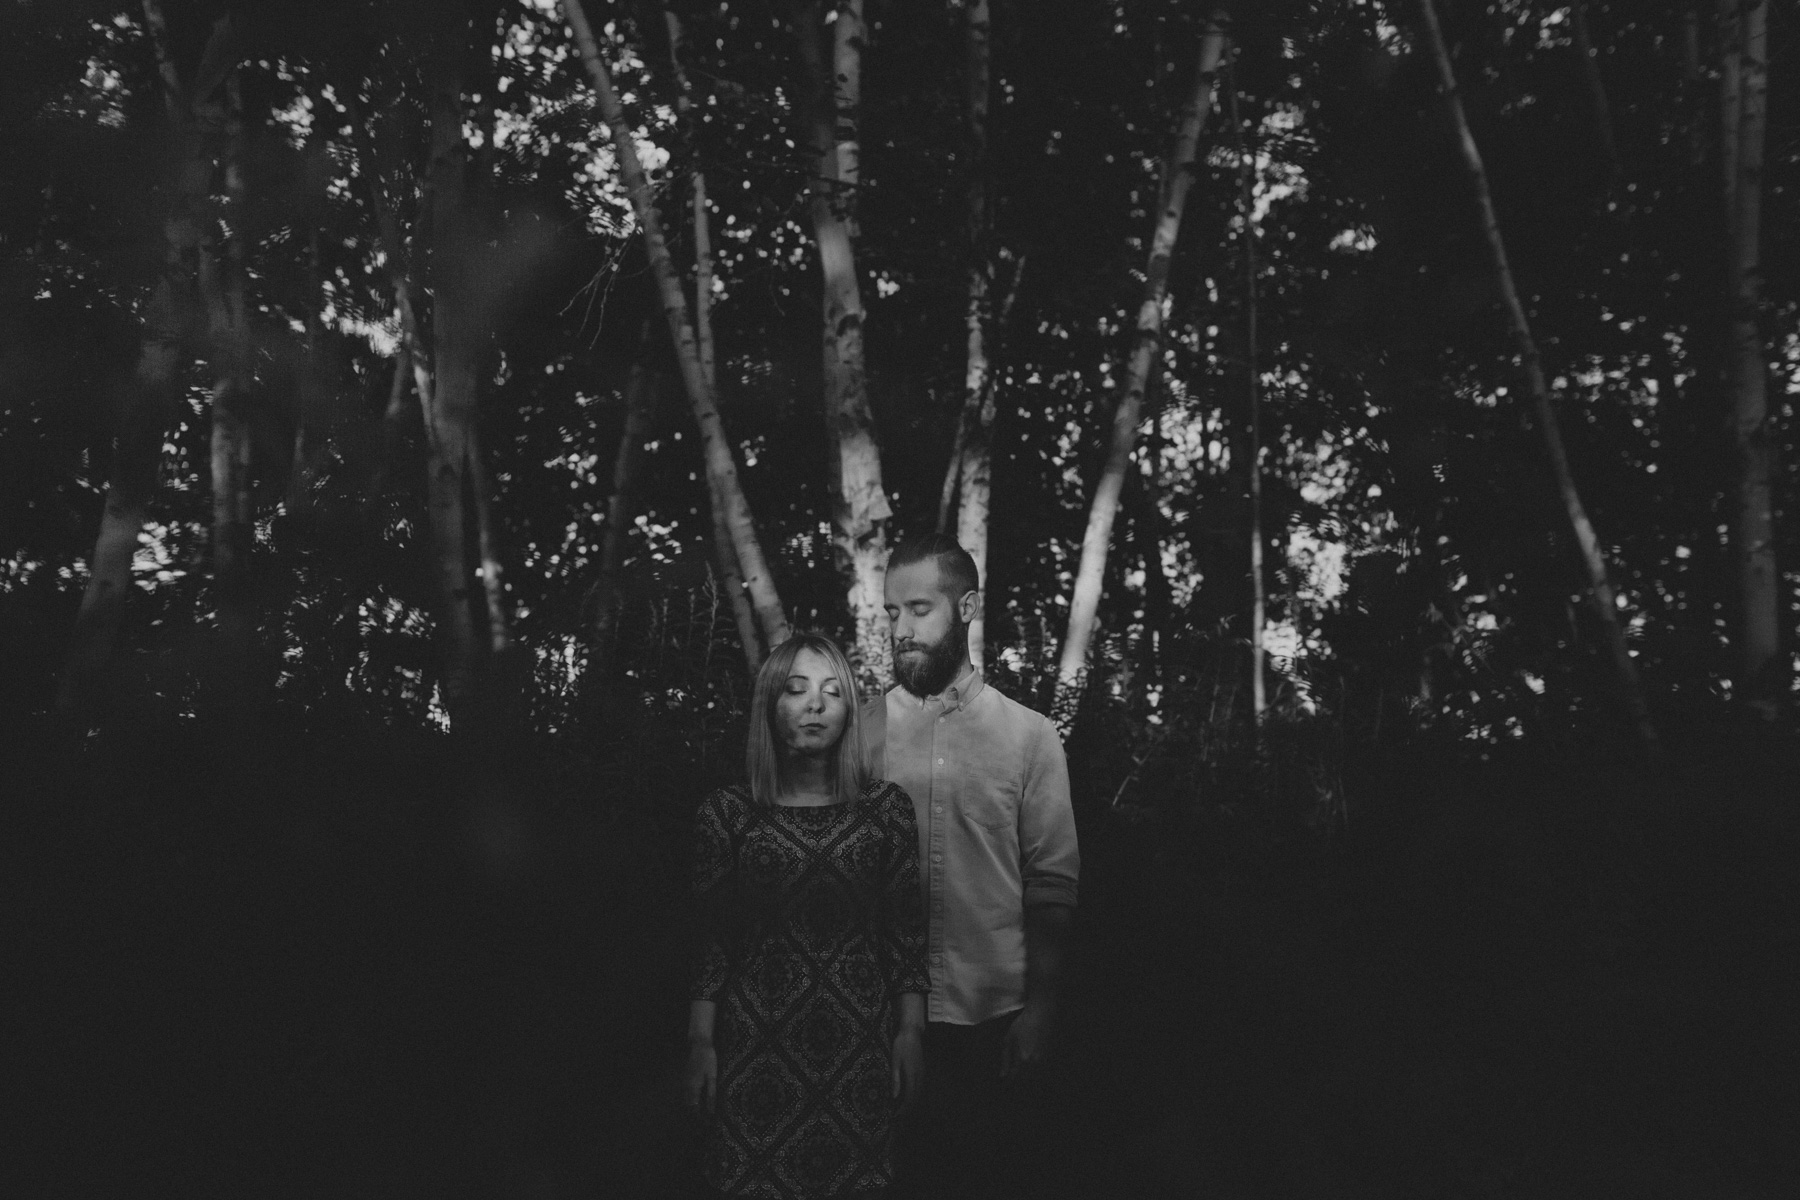 Adventure-engagement-photography-by-Sam-Wong-of-Artanis-Collective_007.jpg